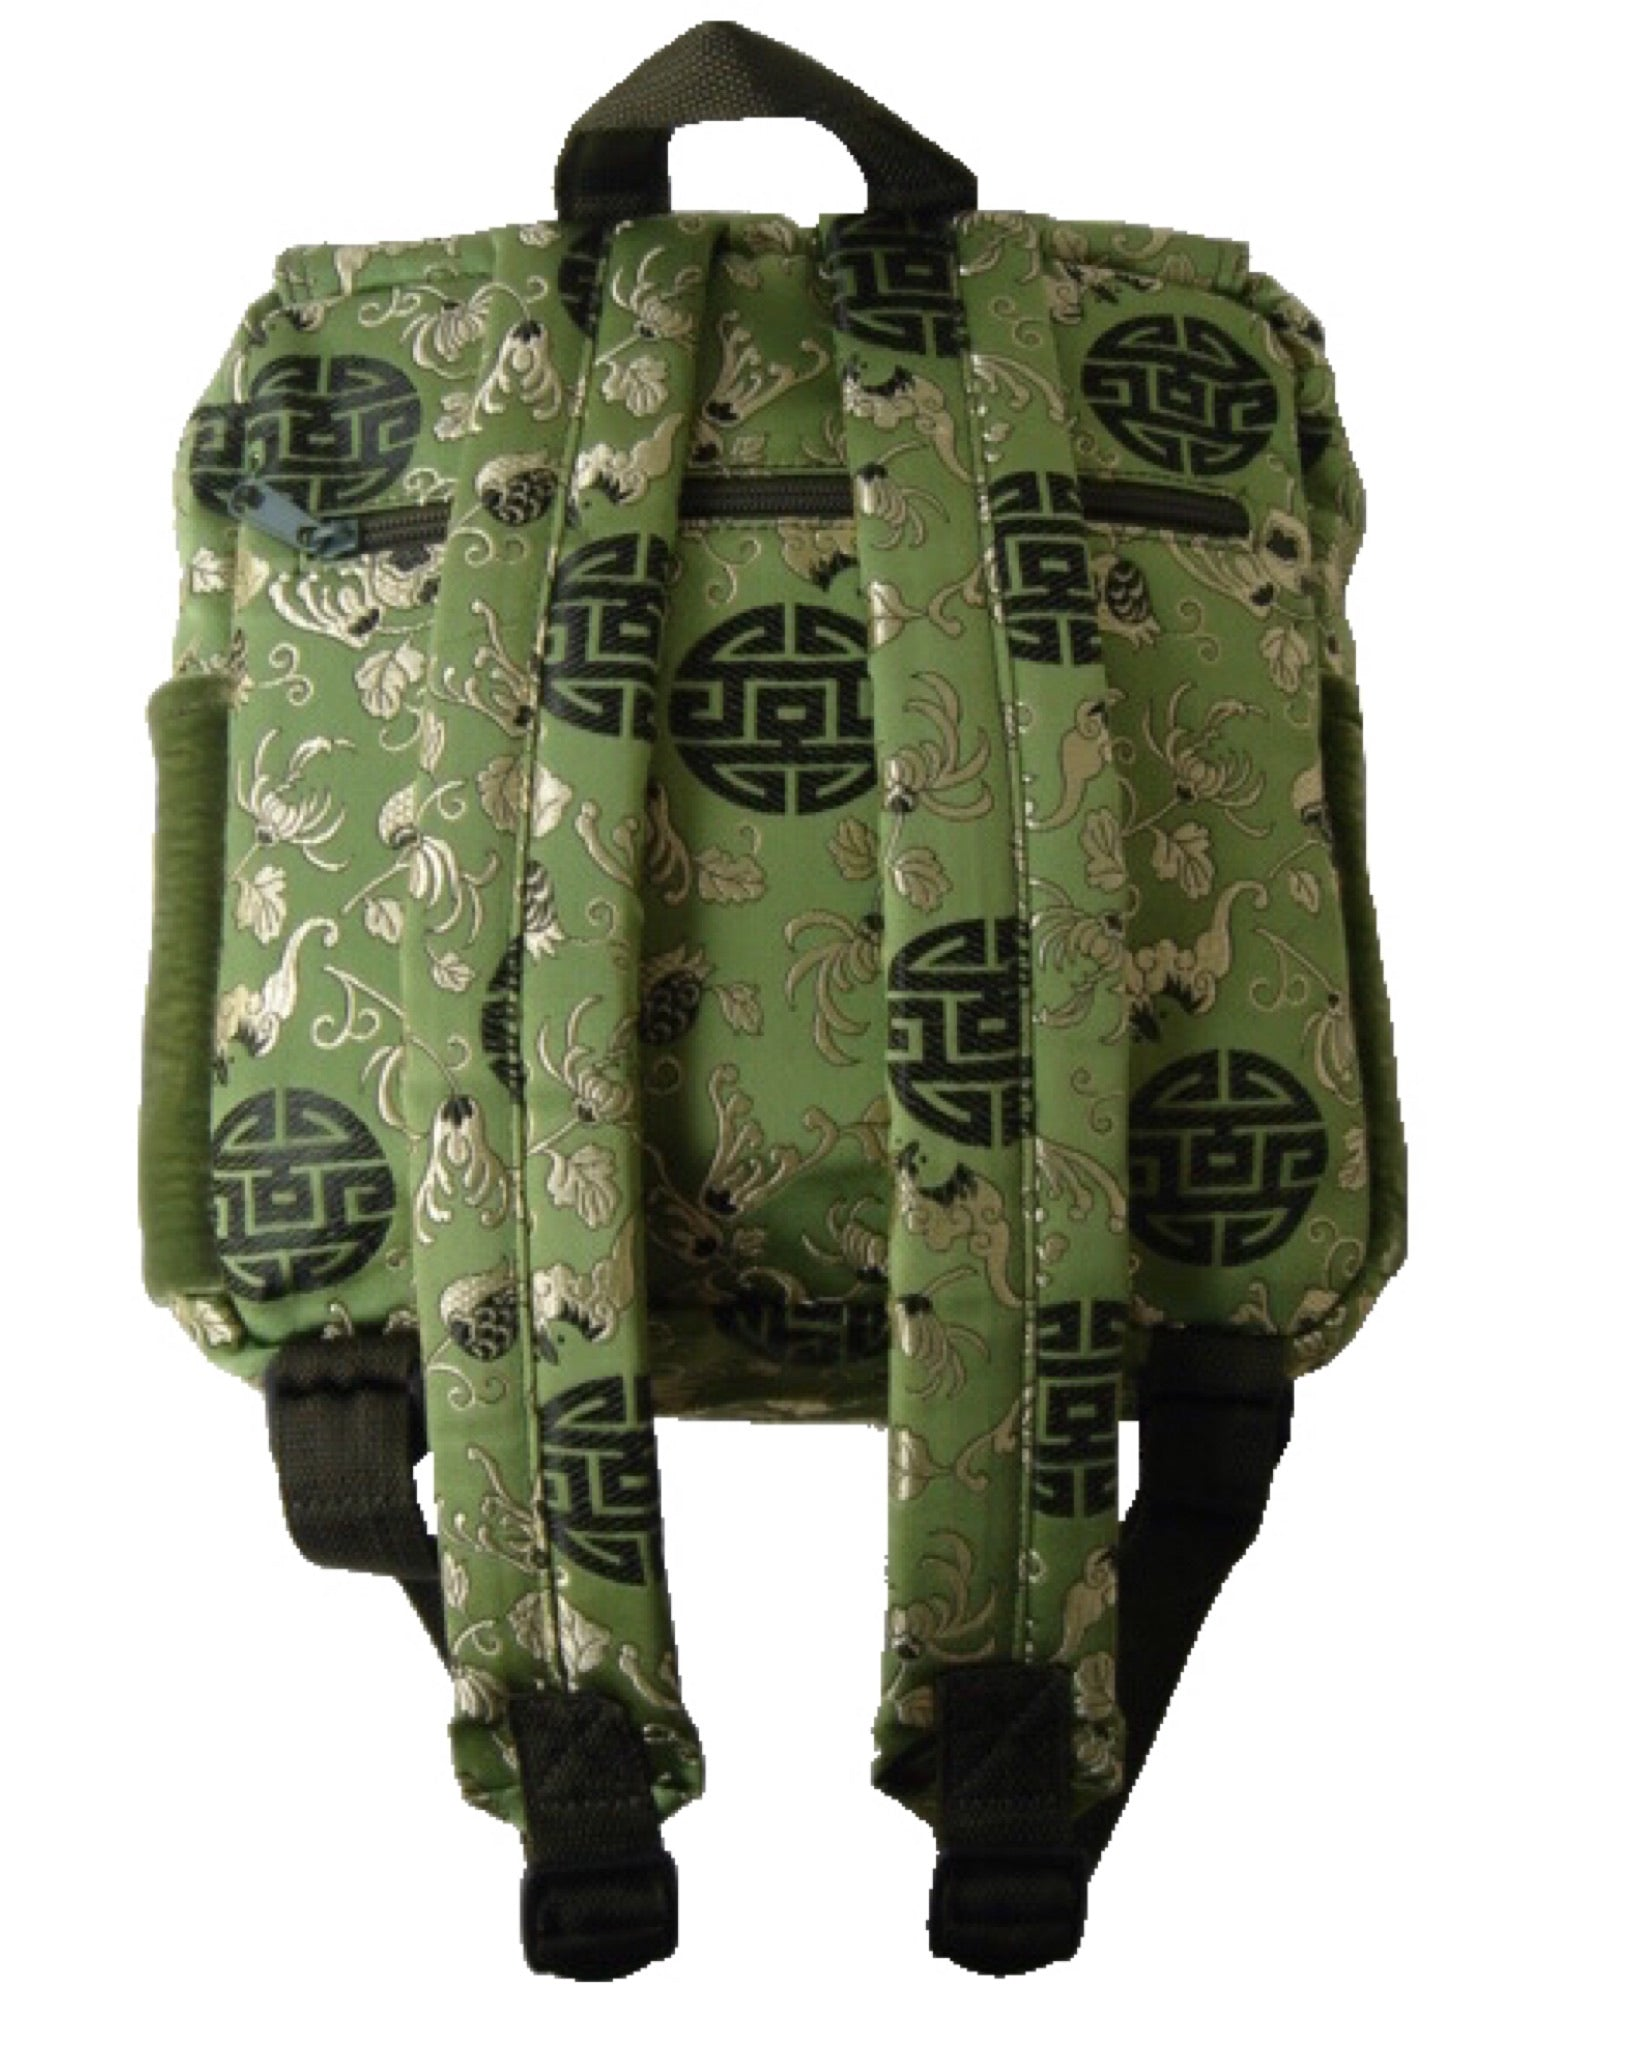 Buzz Silk Backpack - Medallion Print